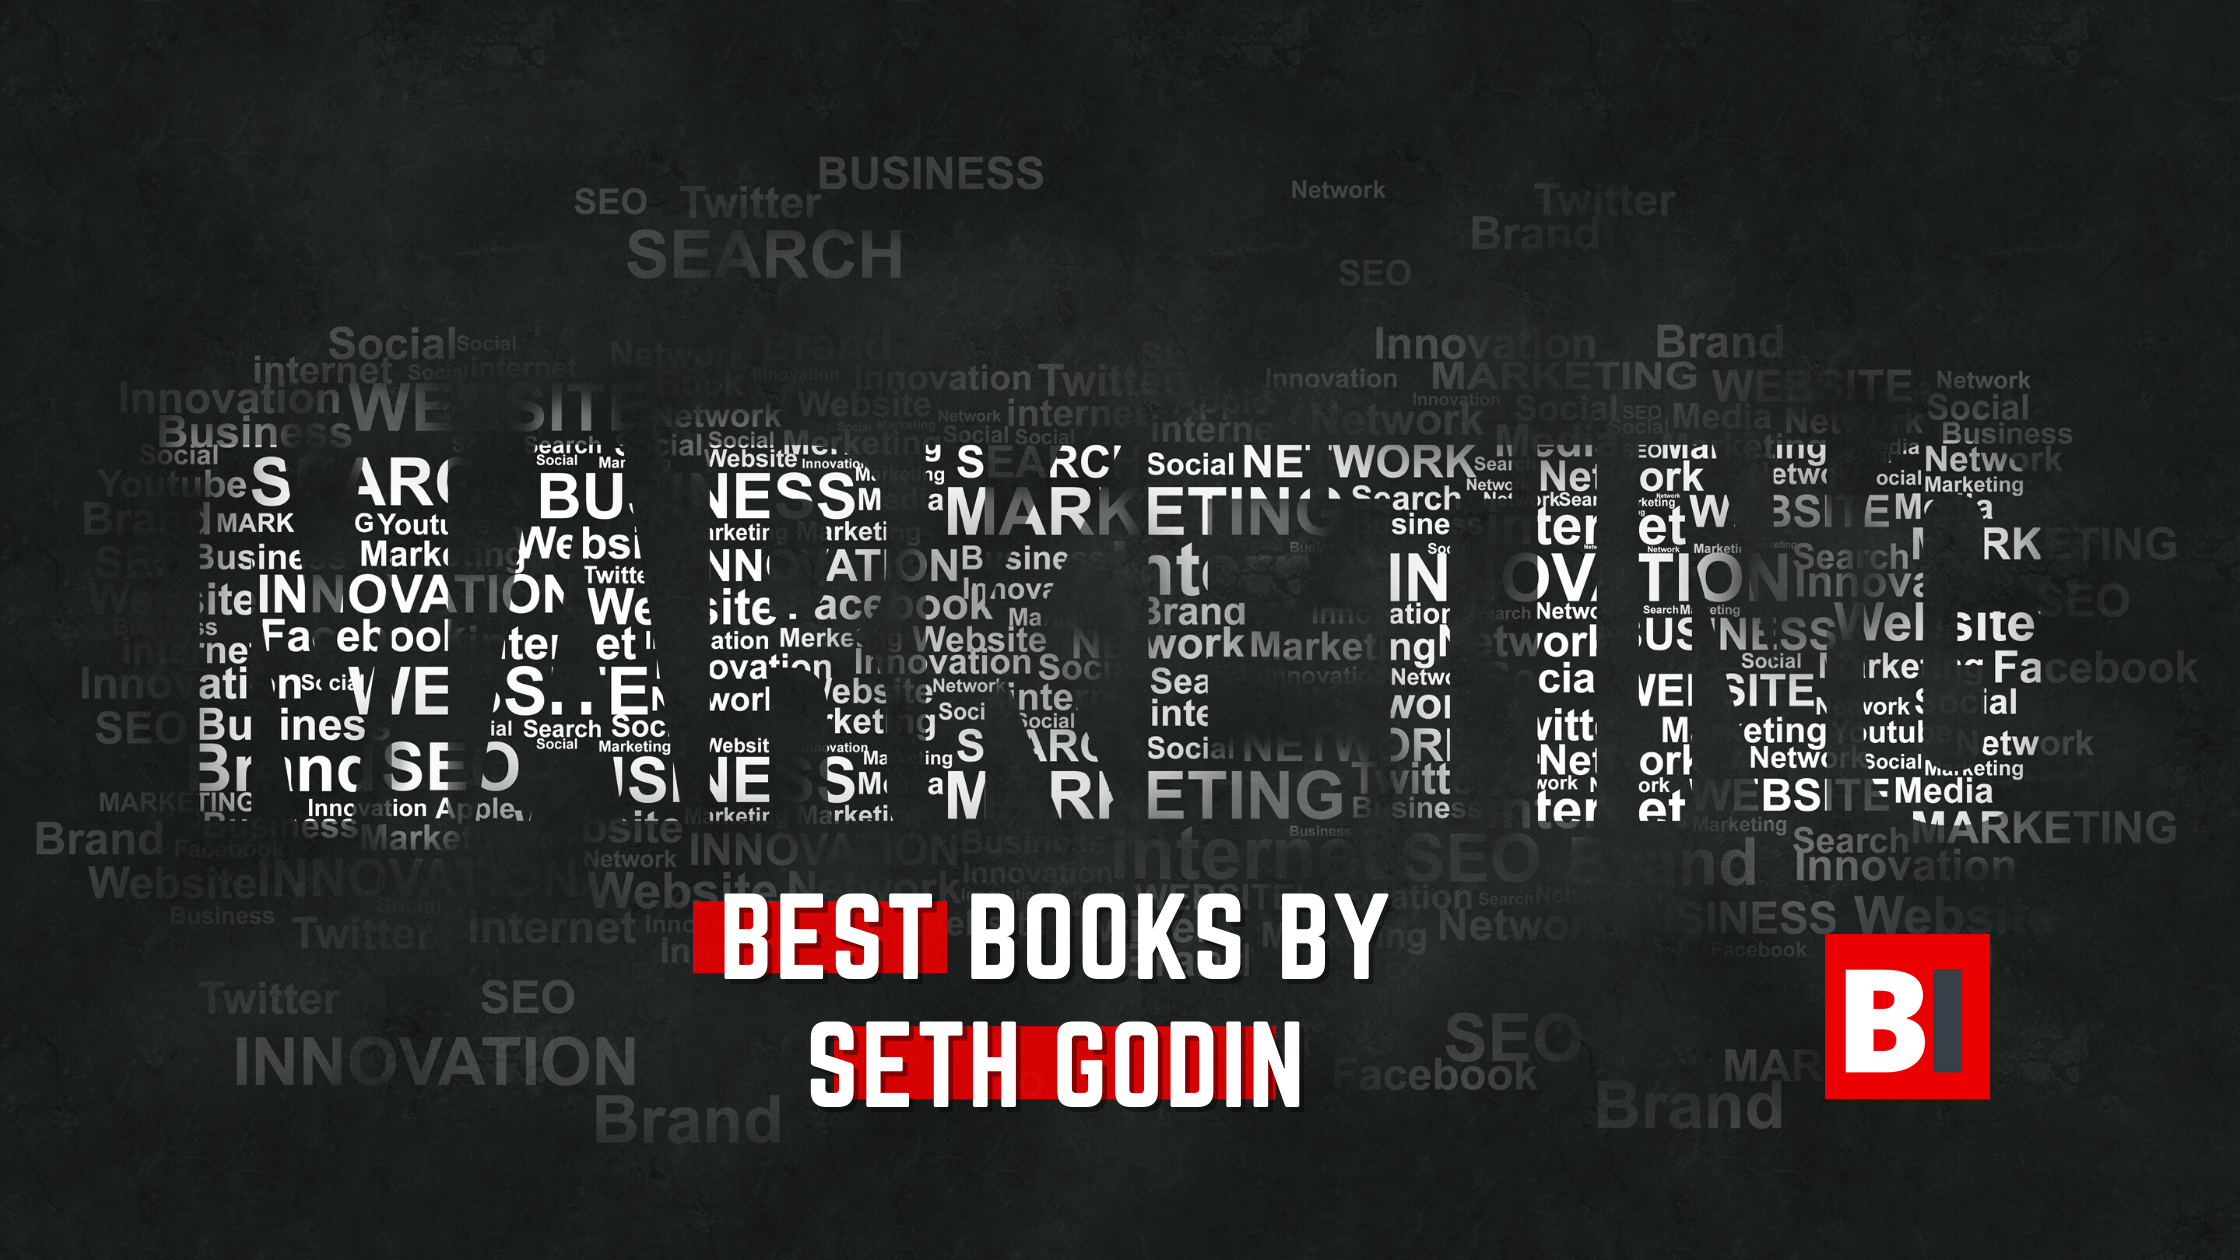 Best Books by Seth Godin